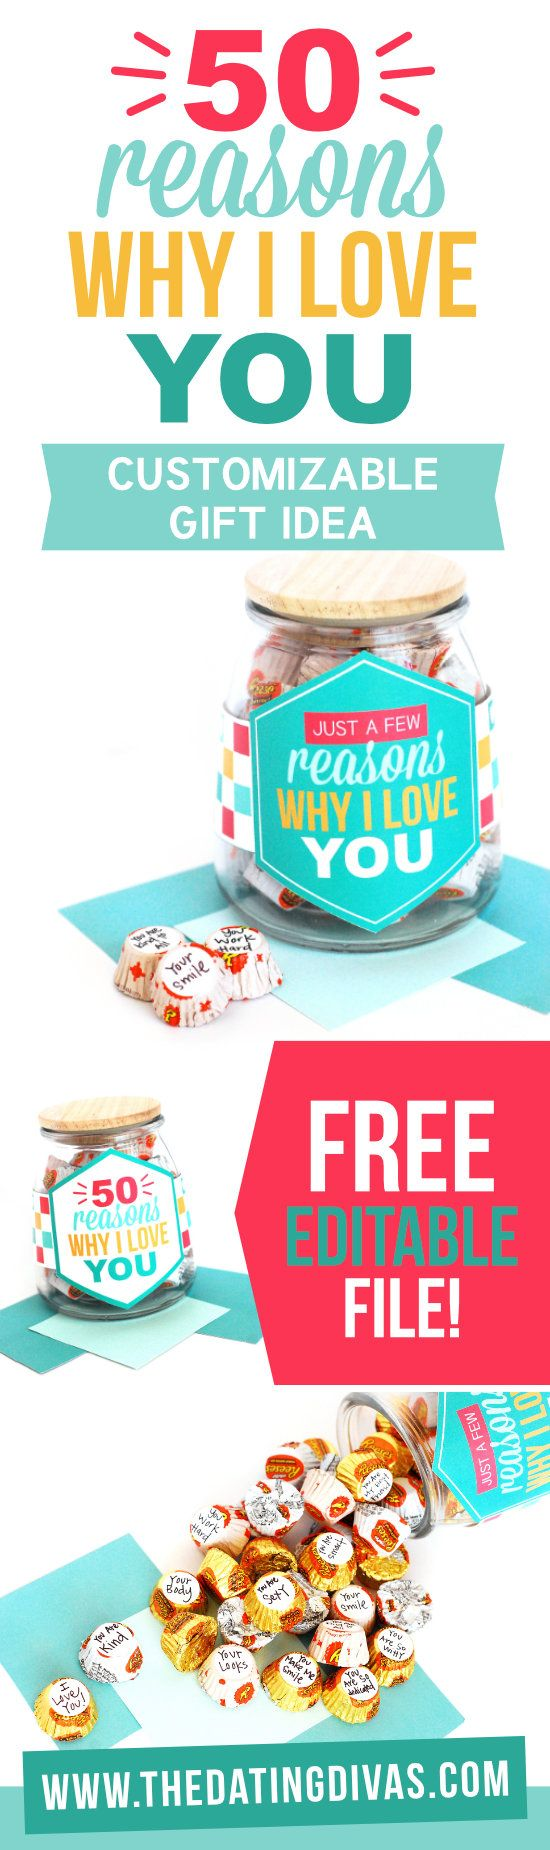 Speciale Cadeaus 50 Reasons Why I Love You Gift Idea Valentine S Pinterest